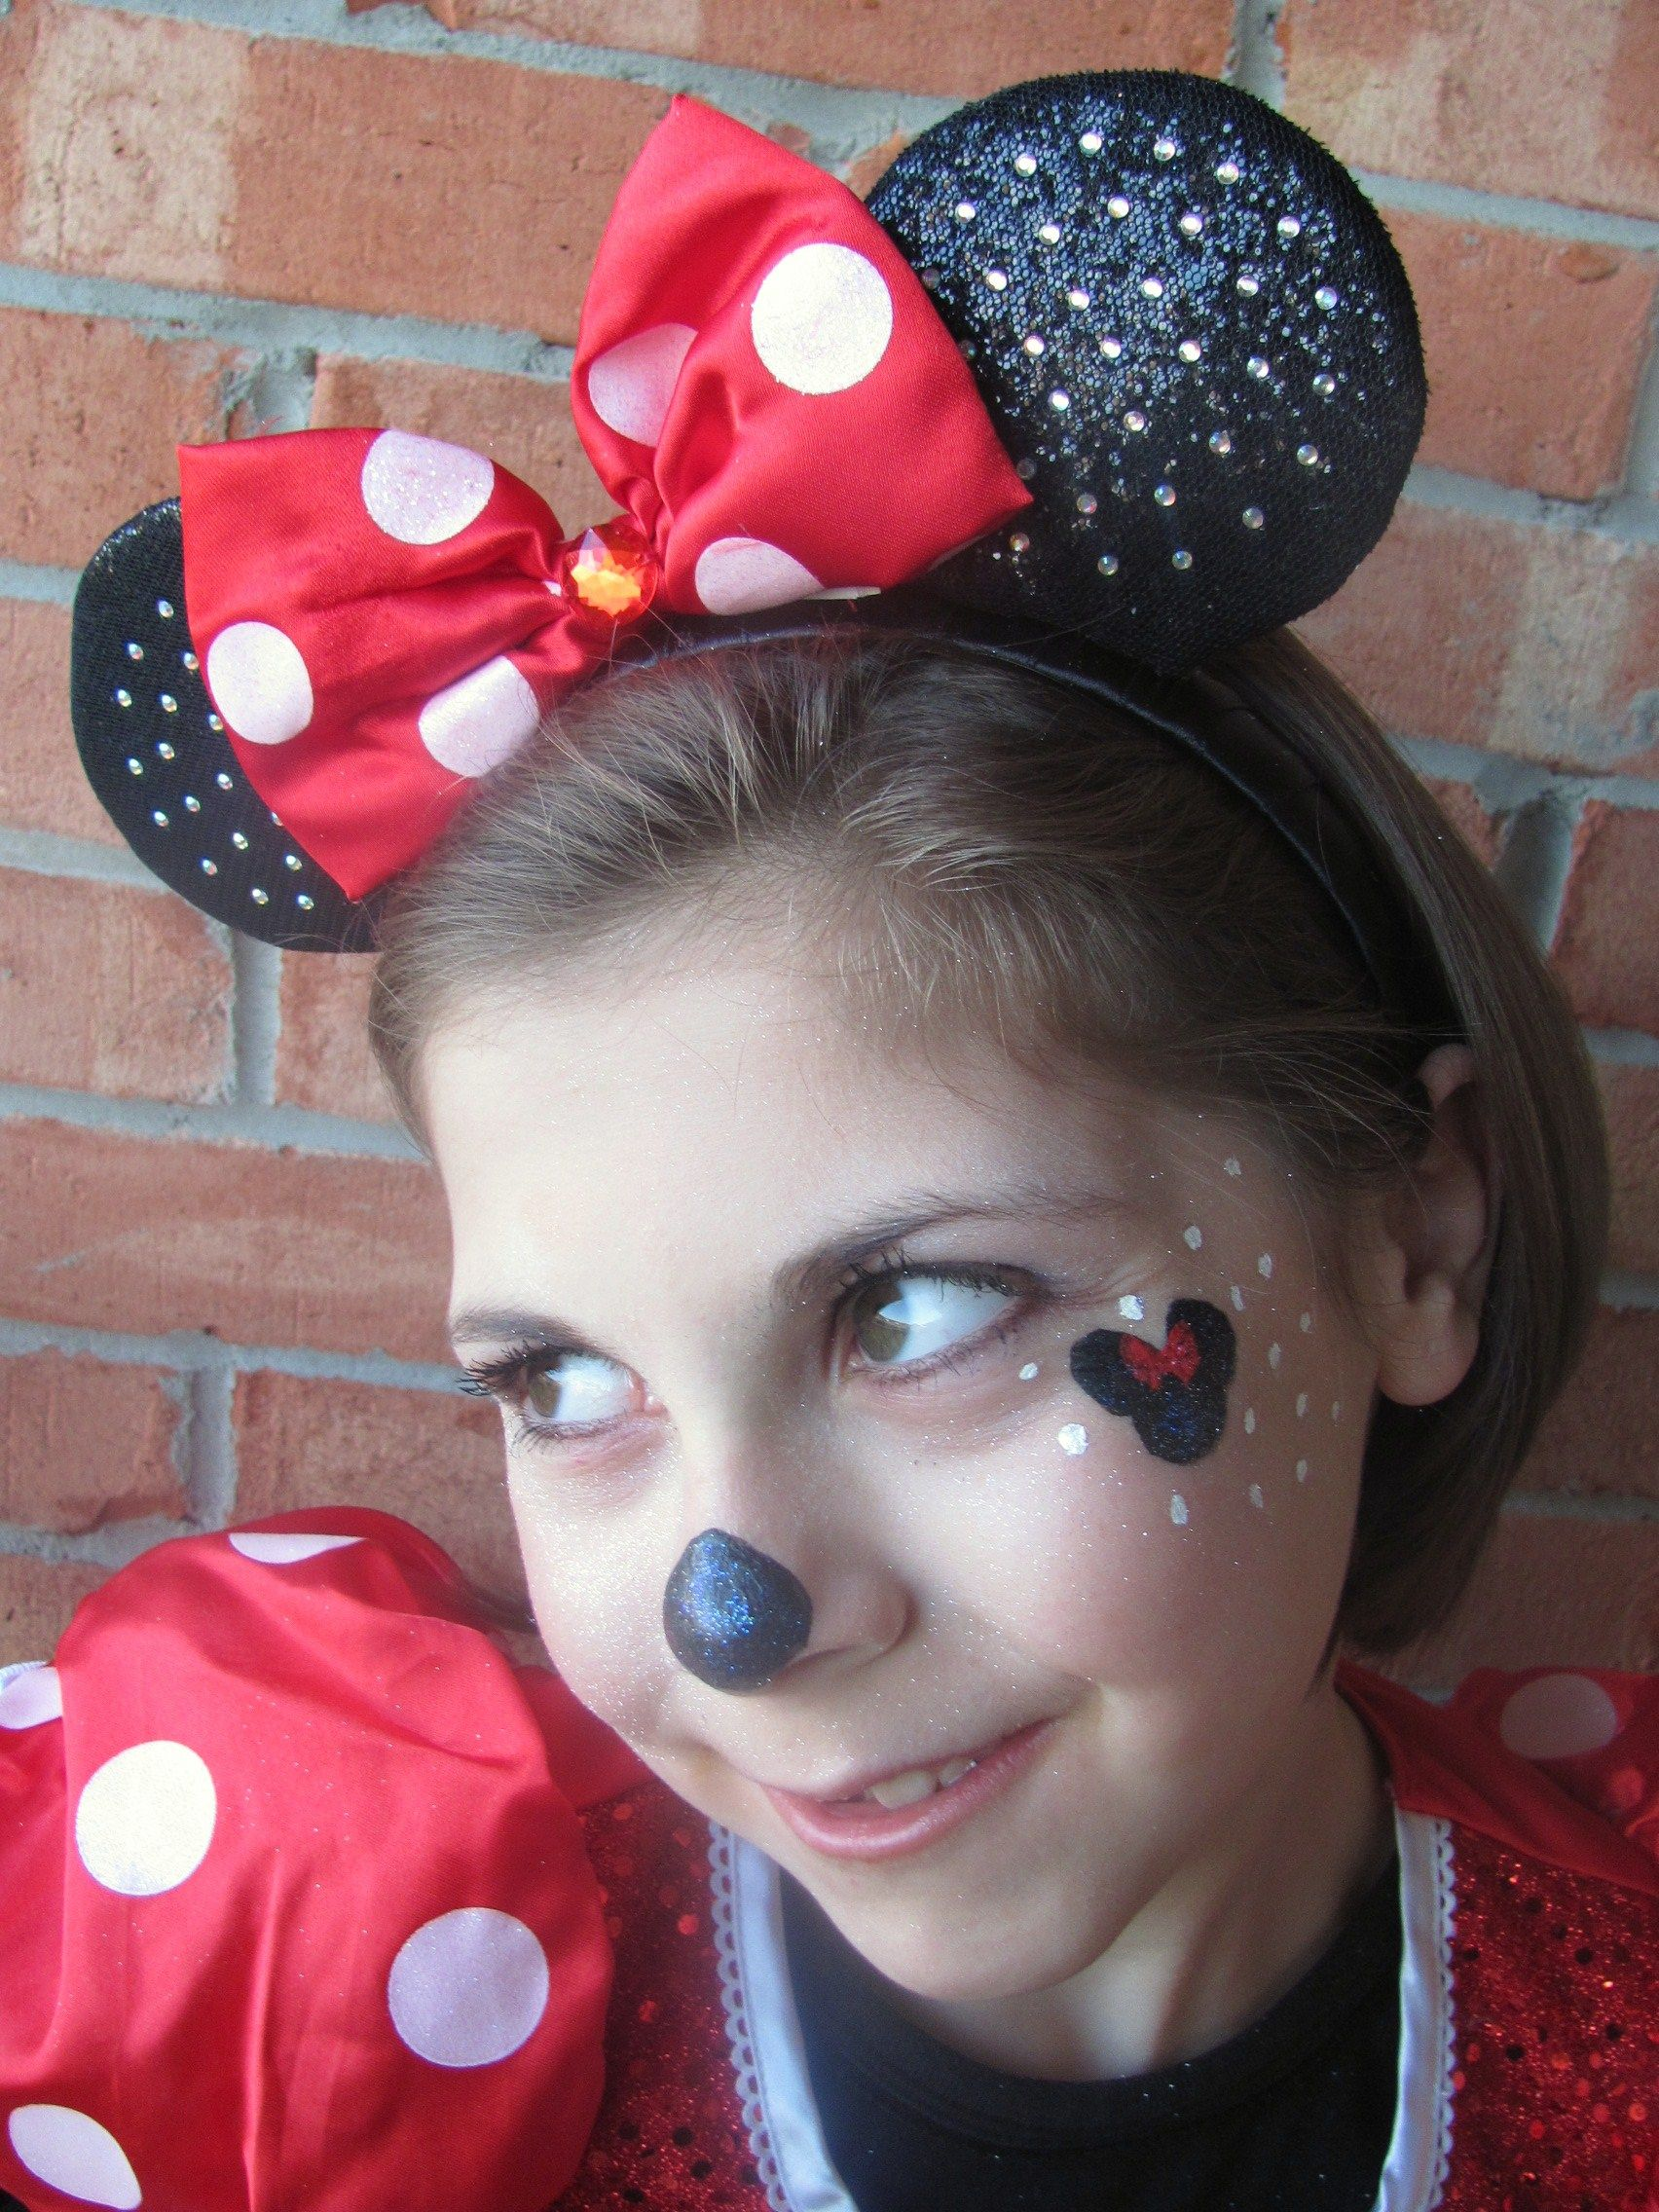 minnie mouse makeup makeup pinterest minnie mouse mice and fiesta mickey mouse. Black Bedroom Furniture Sets. Home Design Ideas